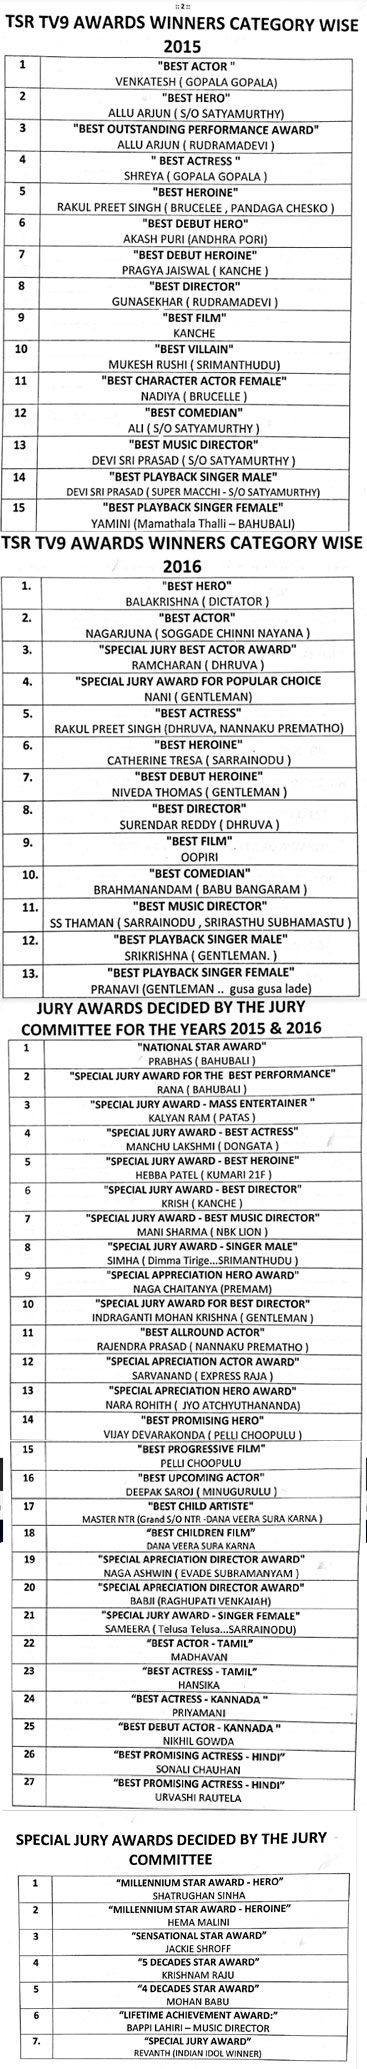 tsr tv 9 awards,tsr tv9 awards 2015,tsr tv9 2016 awards list,prabhas best actor,tsr tv9 awards winners list,t subbarami reddy  TSR TV9 Awards 2015-16 అవార్డ్స్ లిస్ట్..!